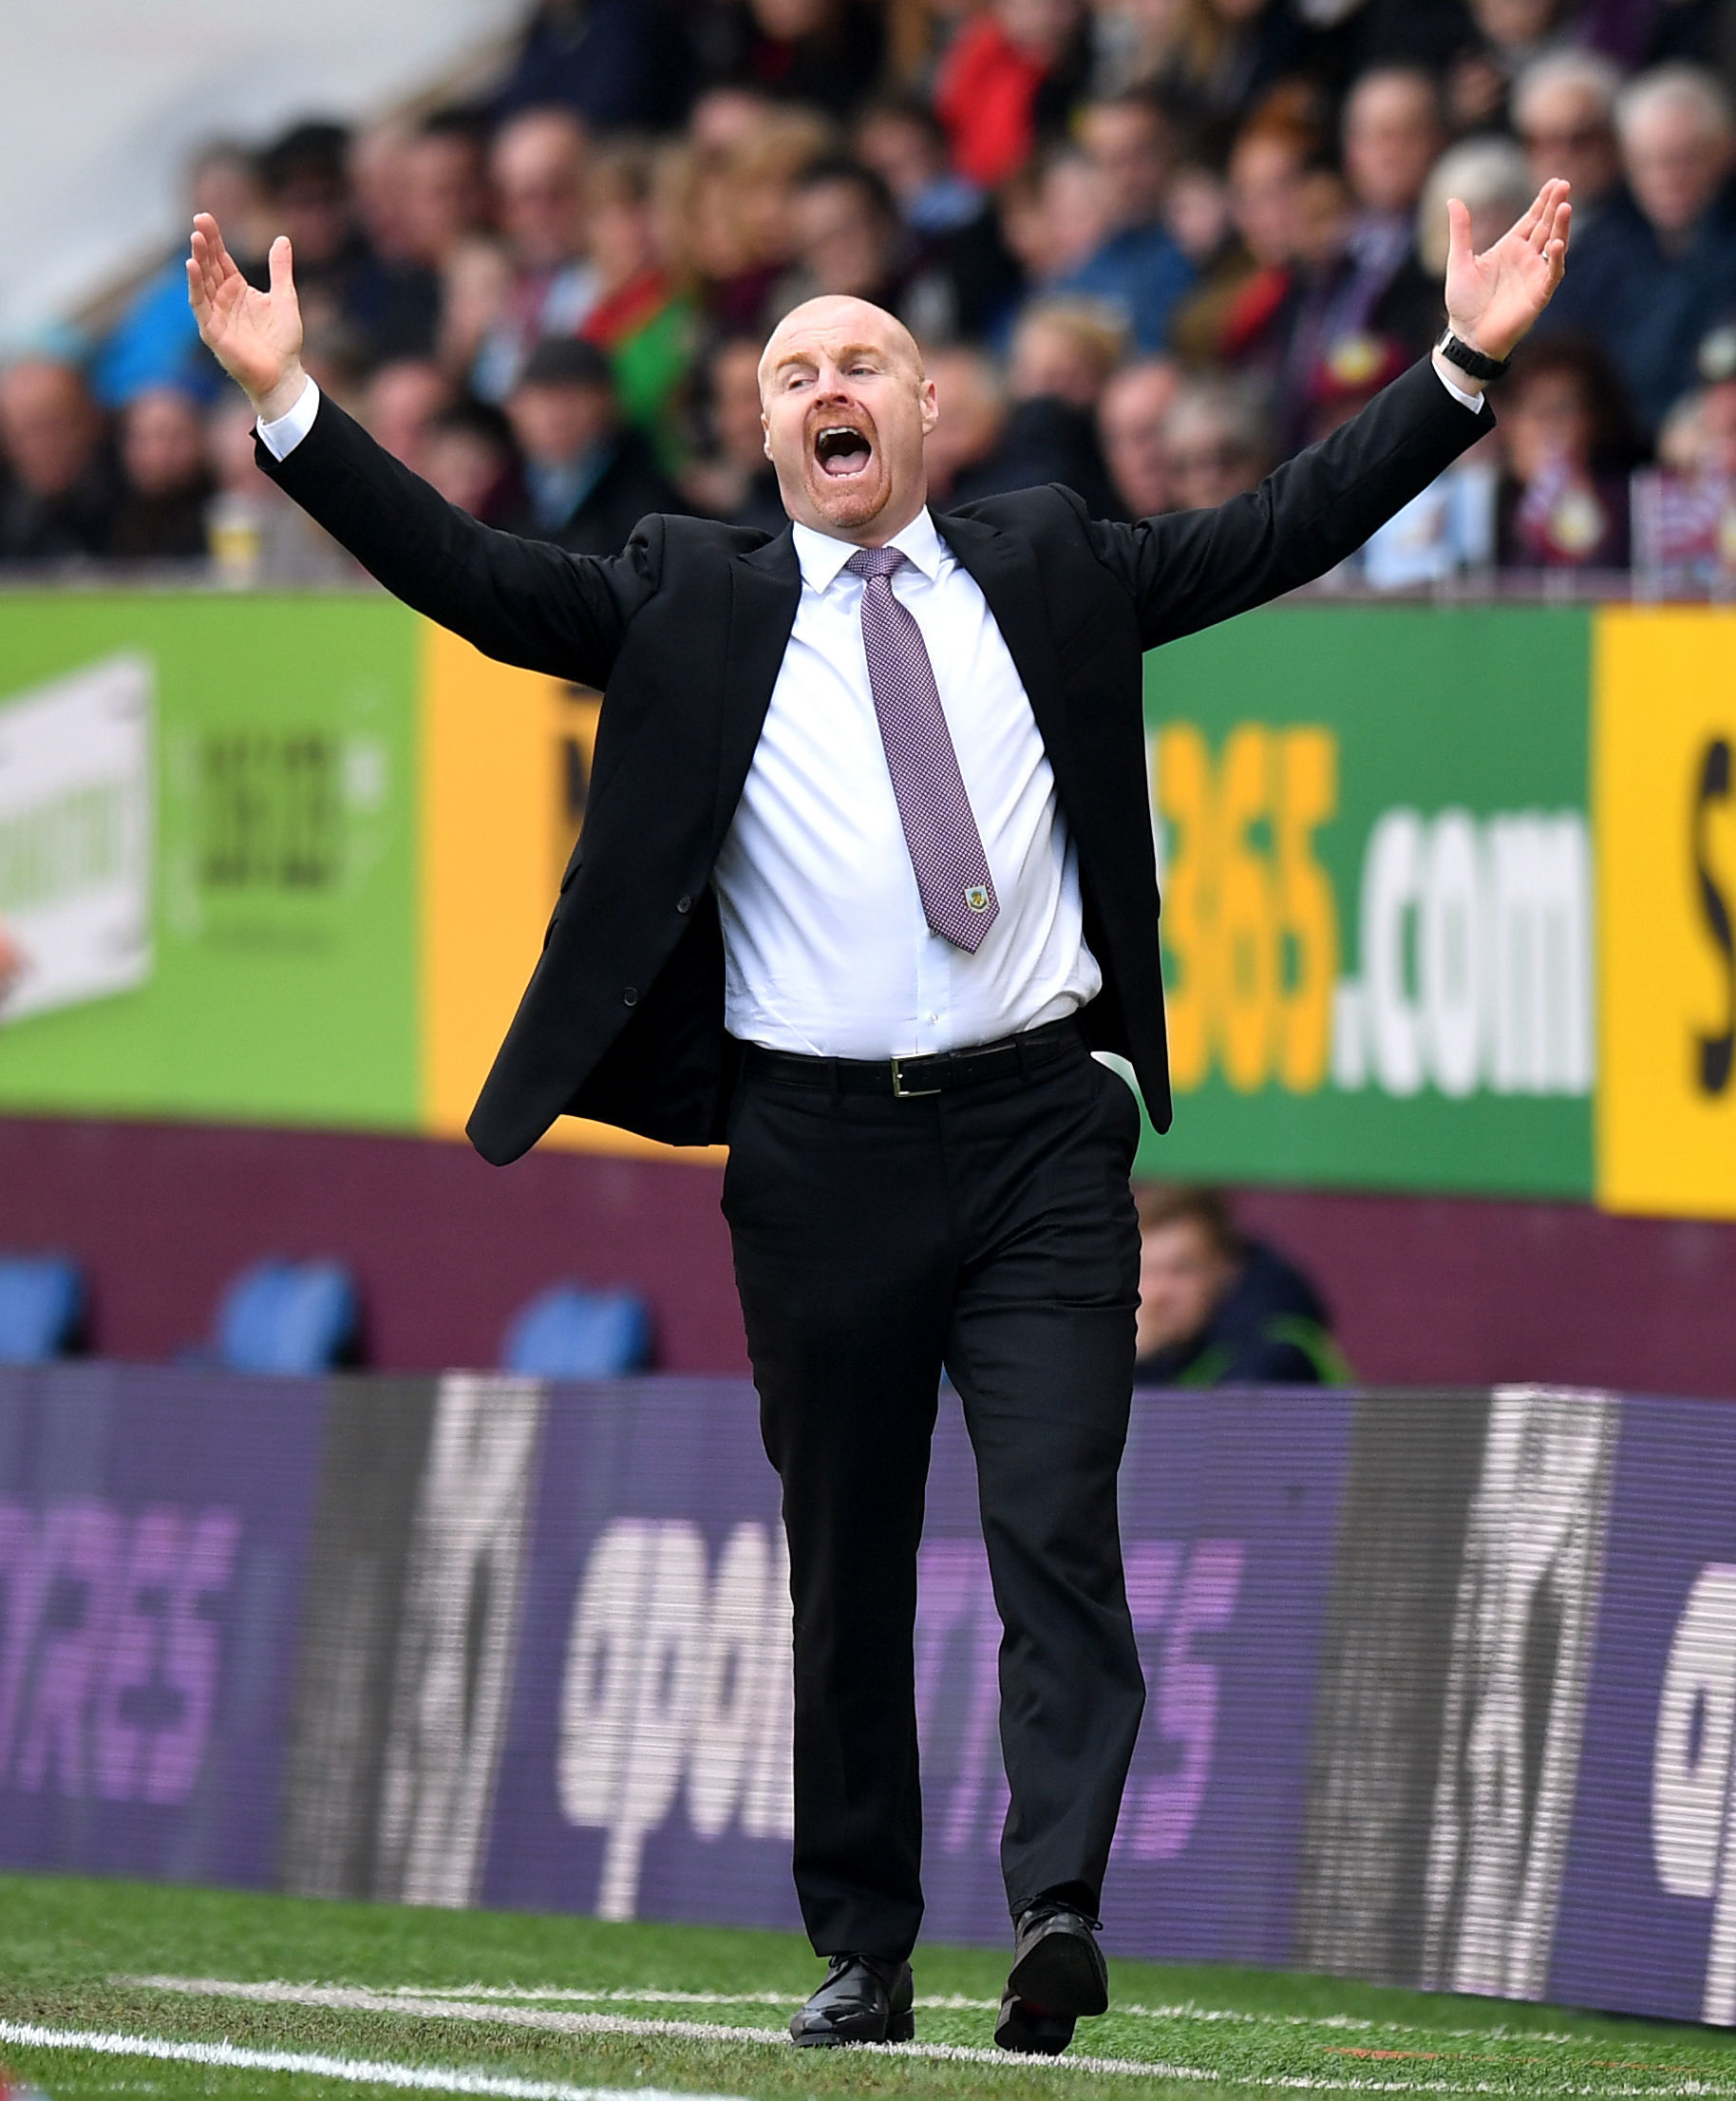 Burnley boss Sean Dyche won his 300th game in charge against Wolves